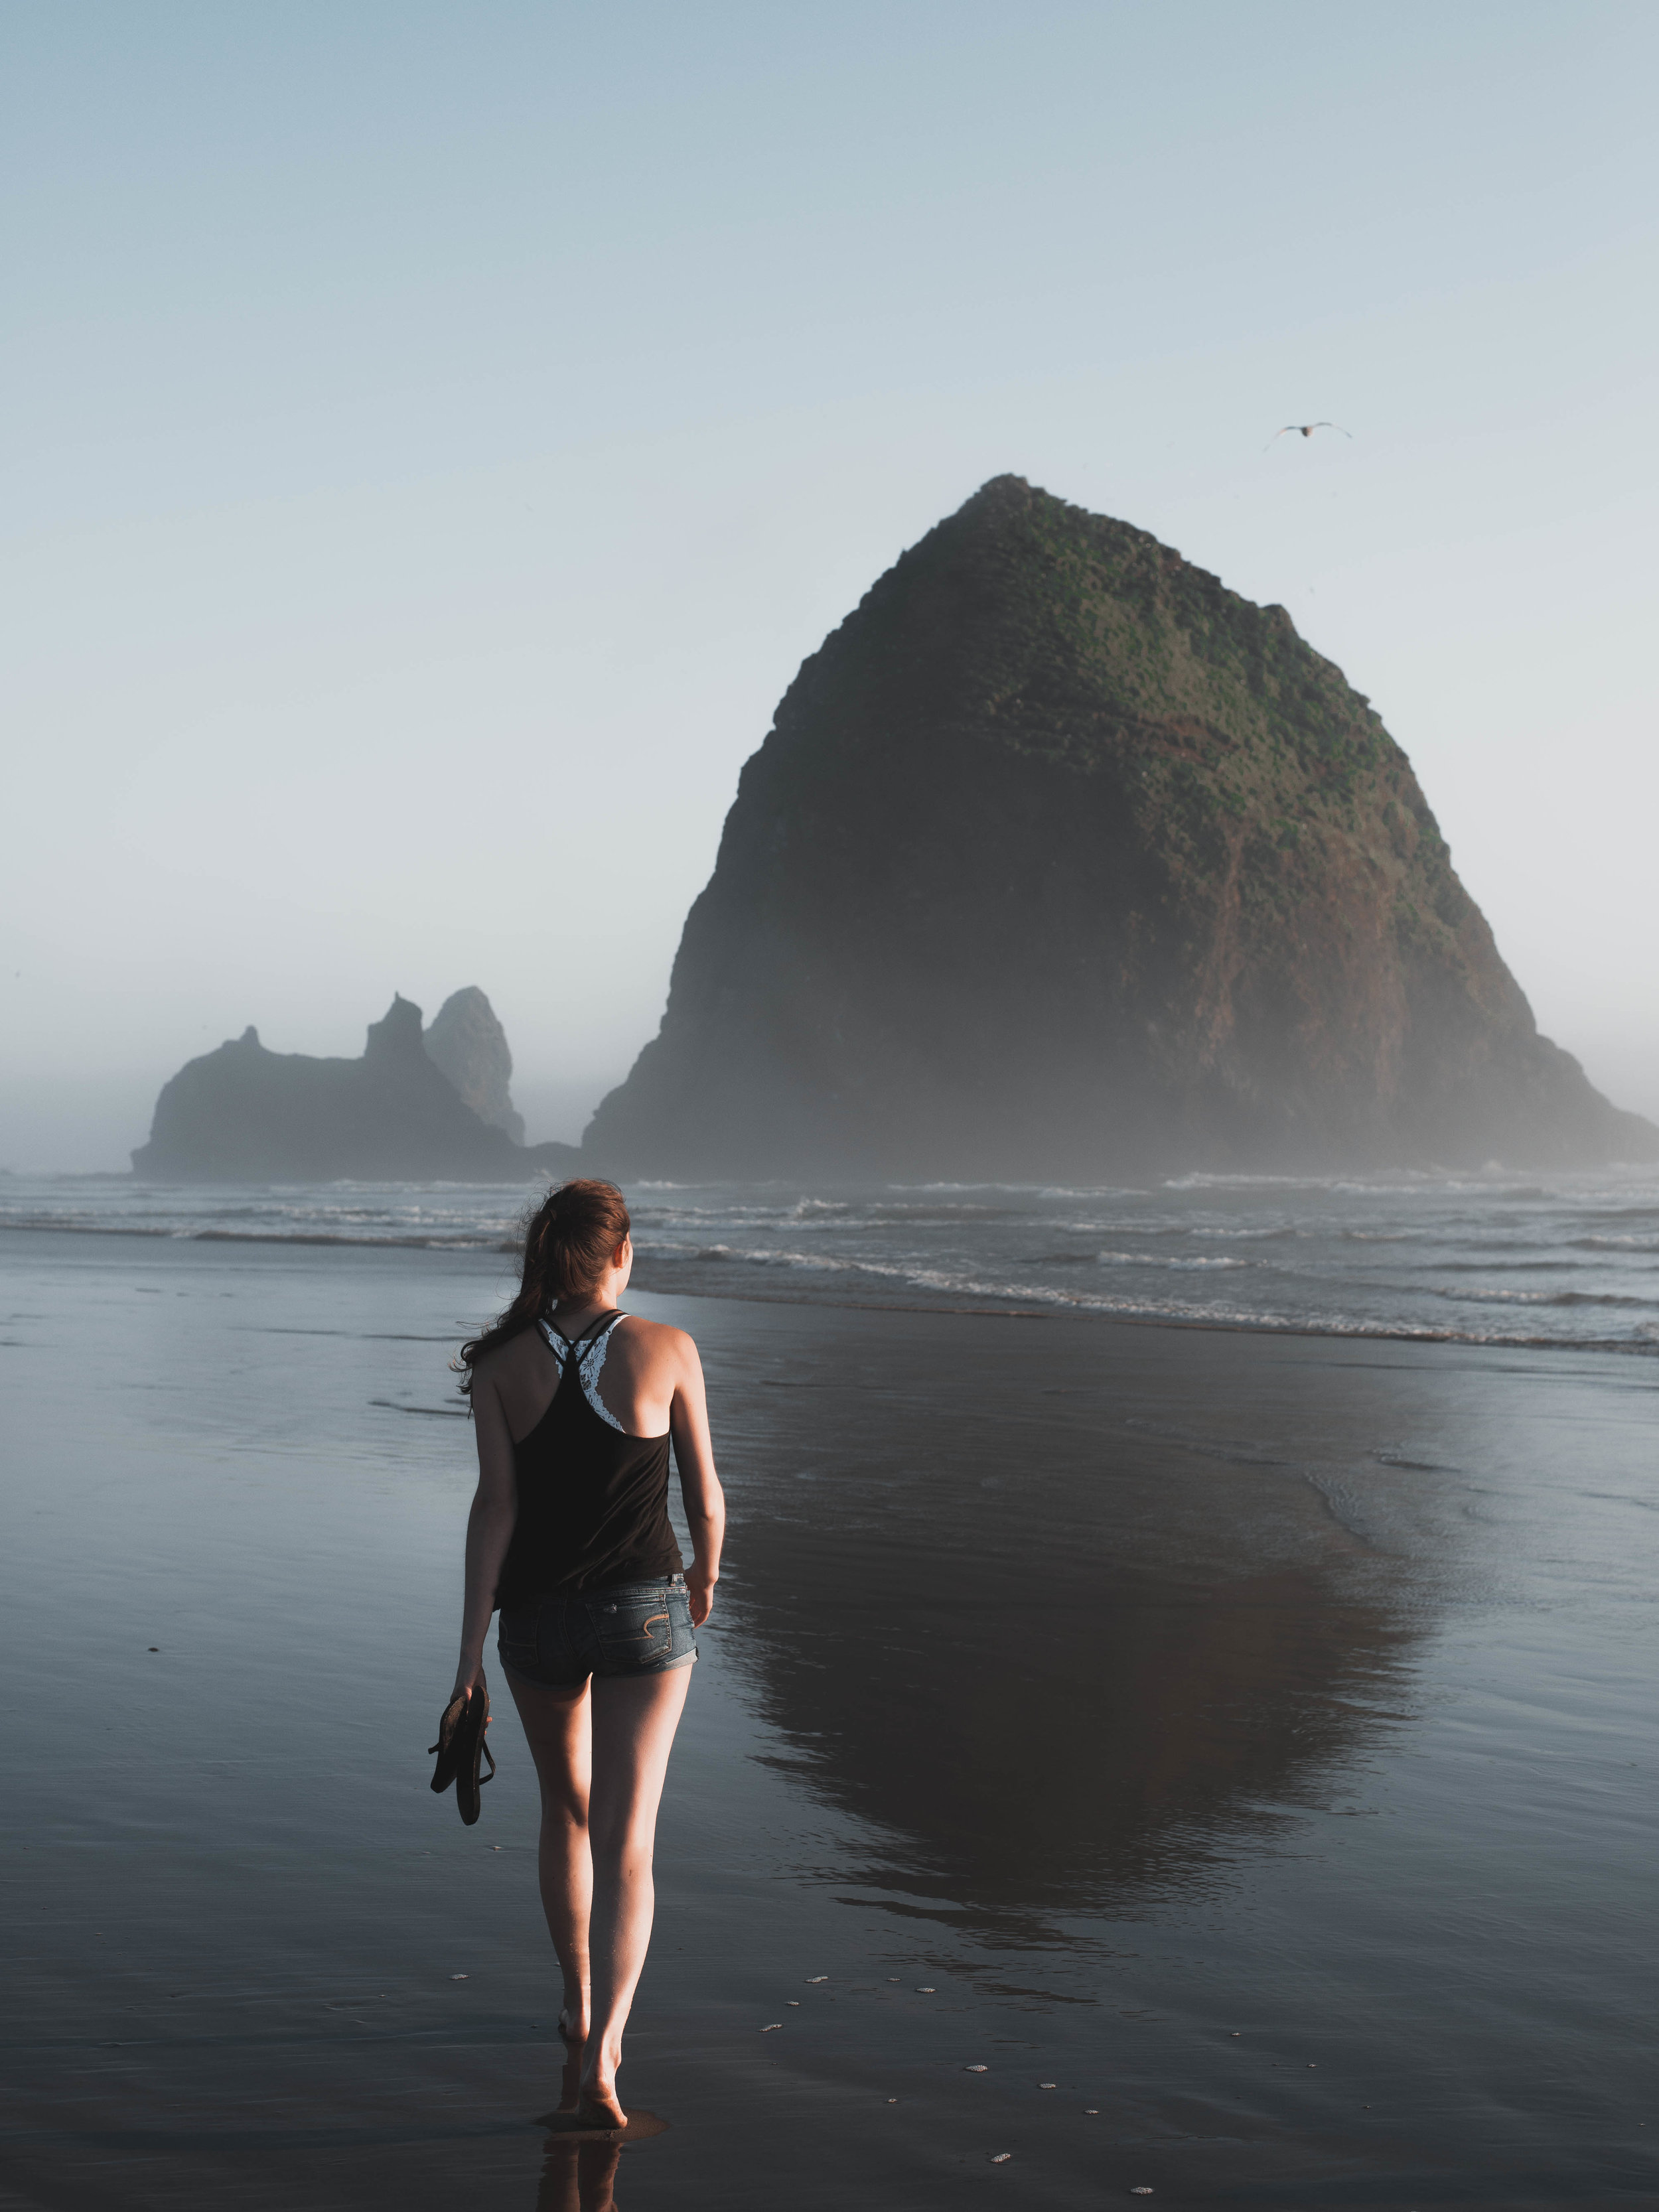 Filling my last quarter of college with mini weekend trips to places like Cannon Beach, OR